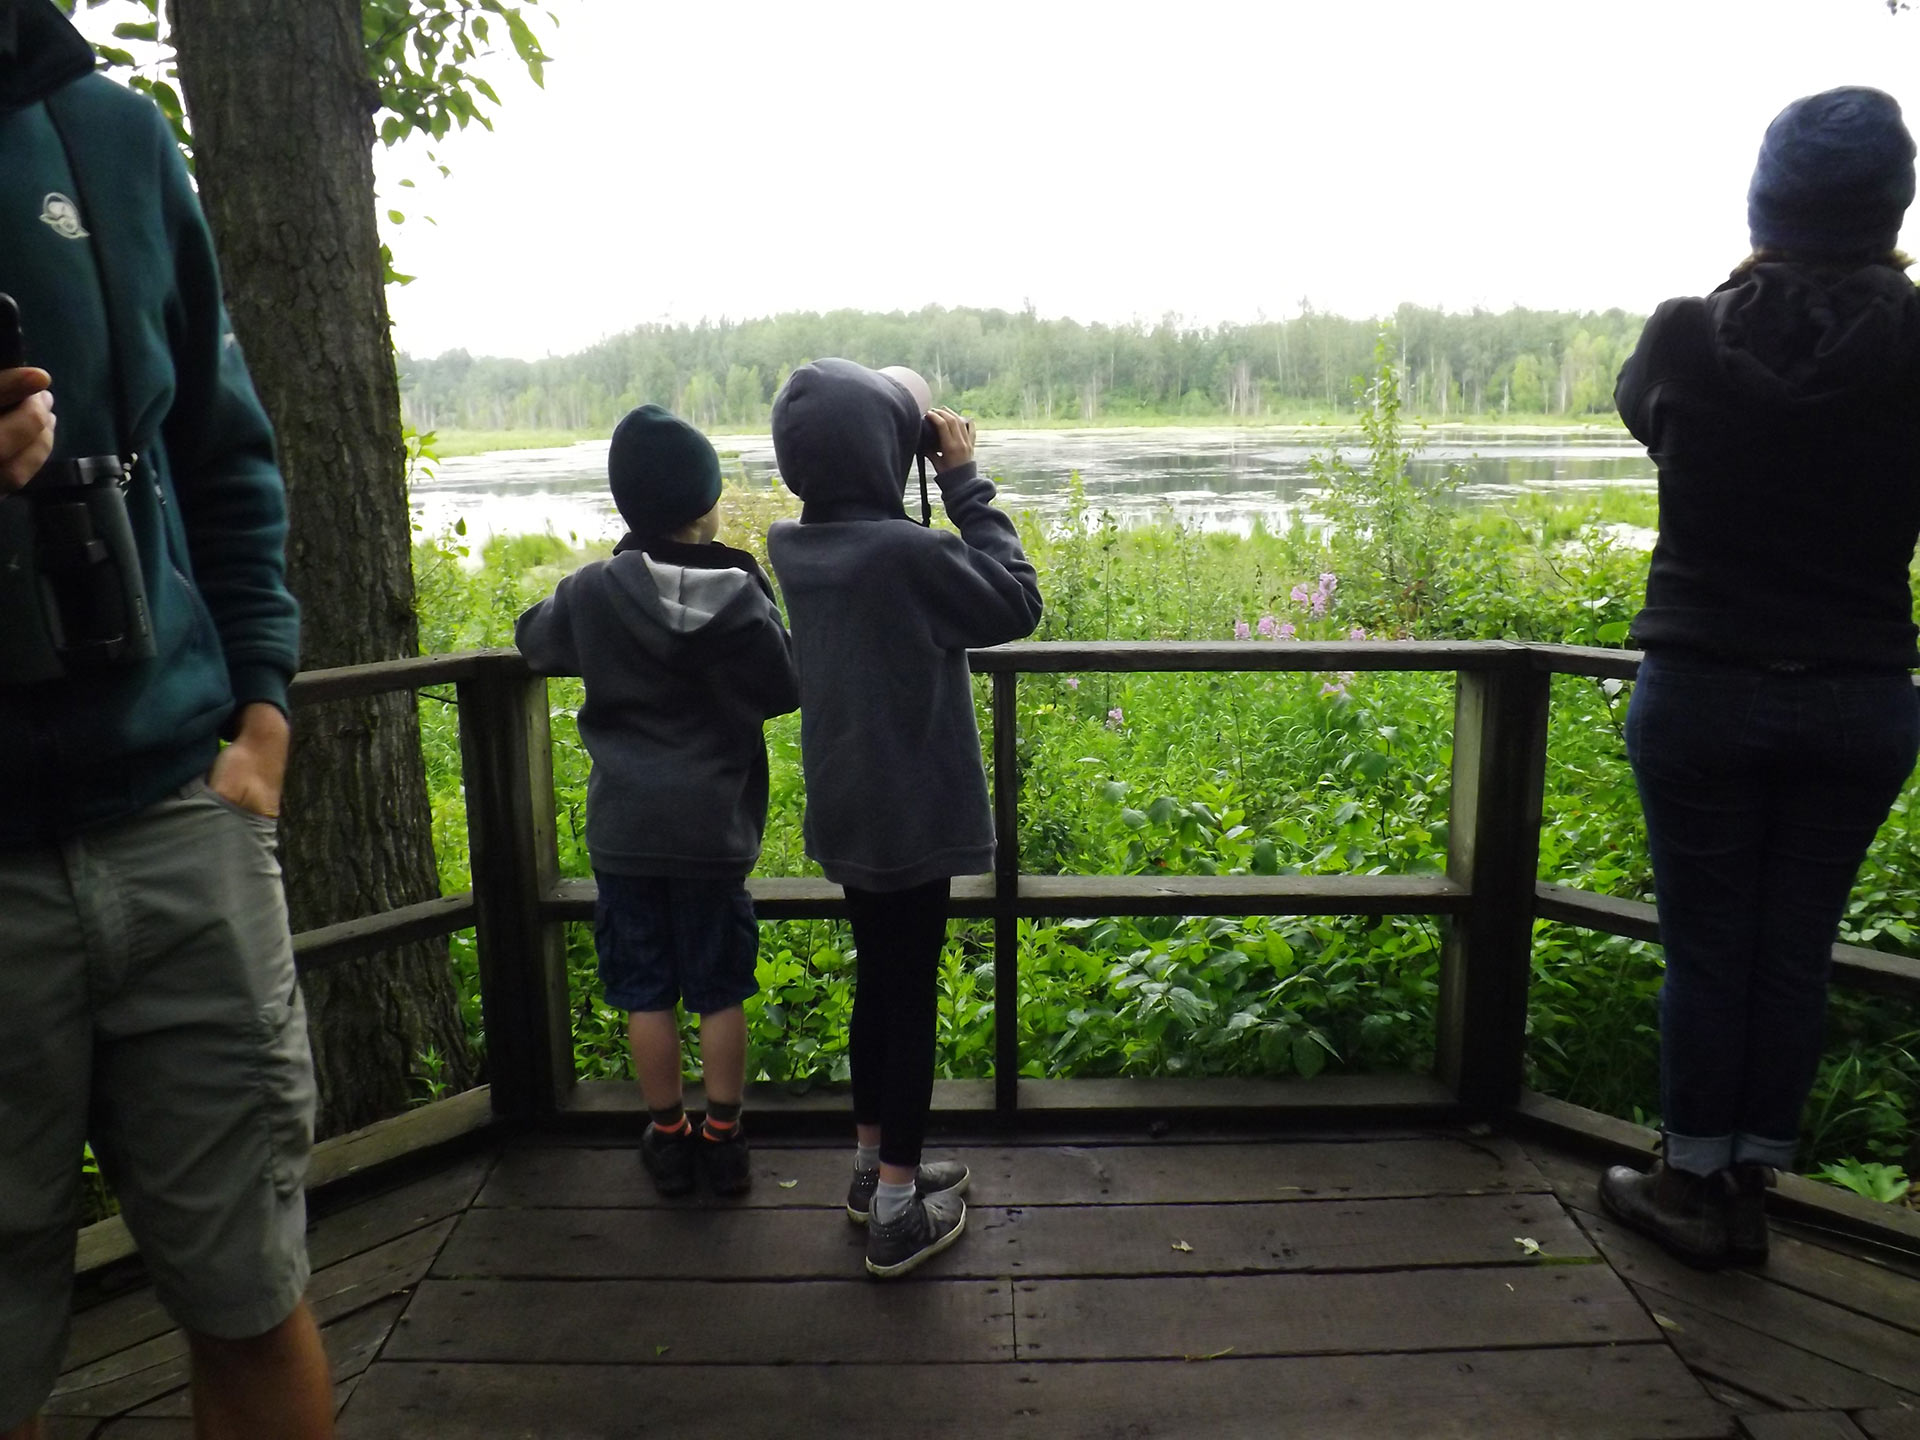 Birdwatching at dawn with some committed conservationist kids